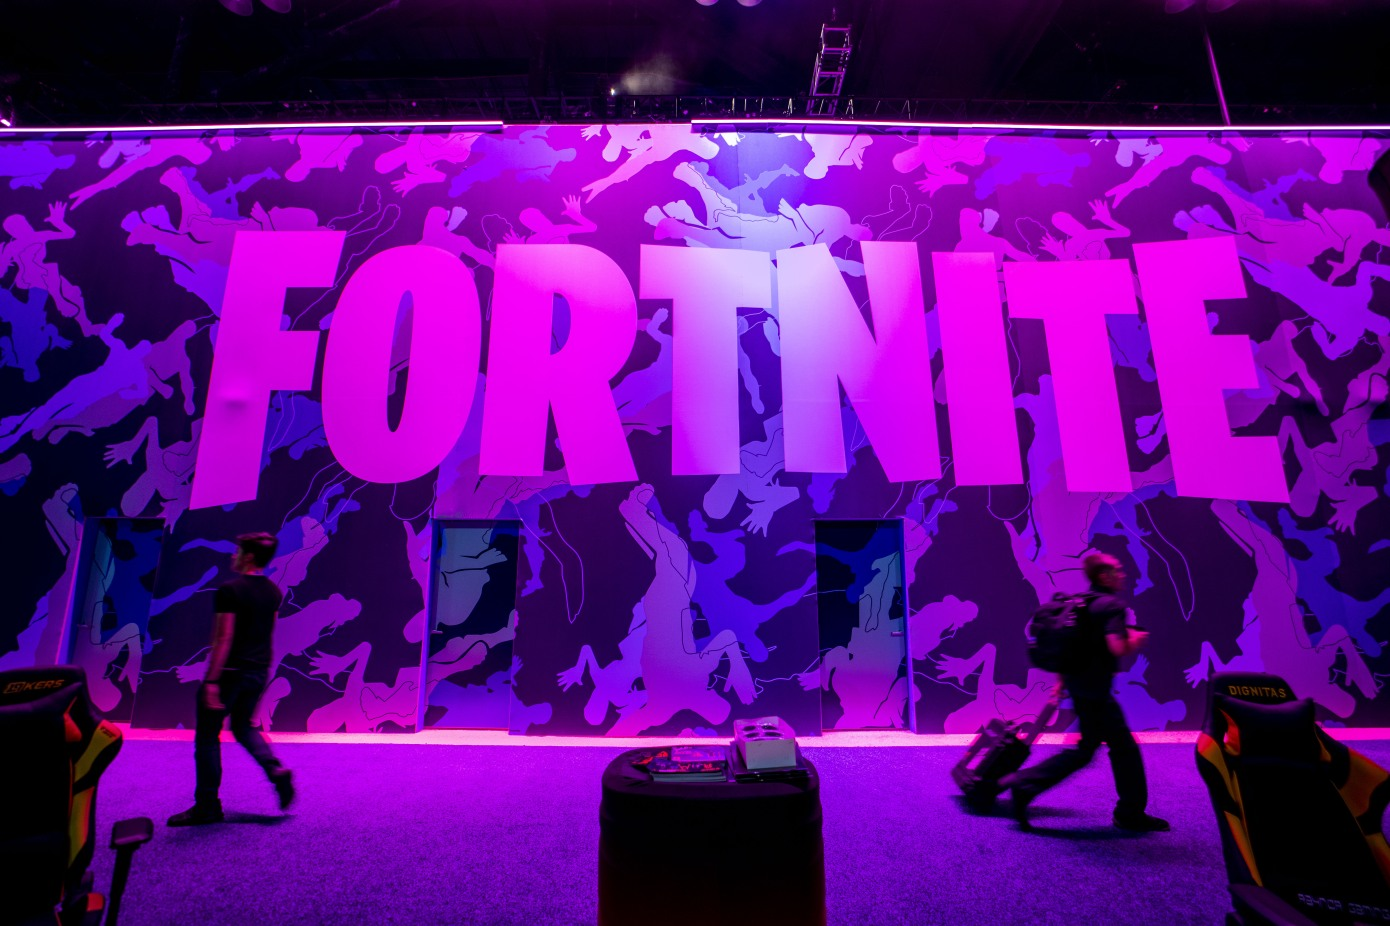 Fortnite-maker Epic completes $1B funding round